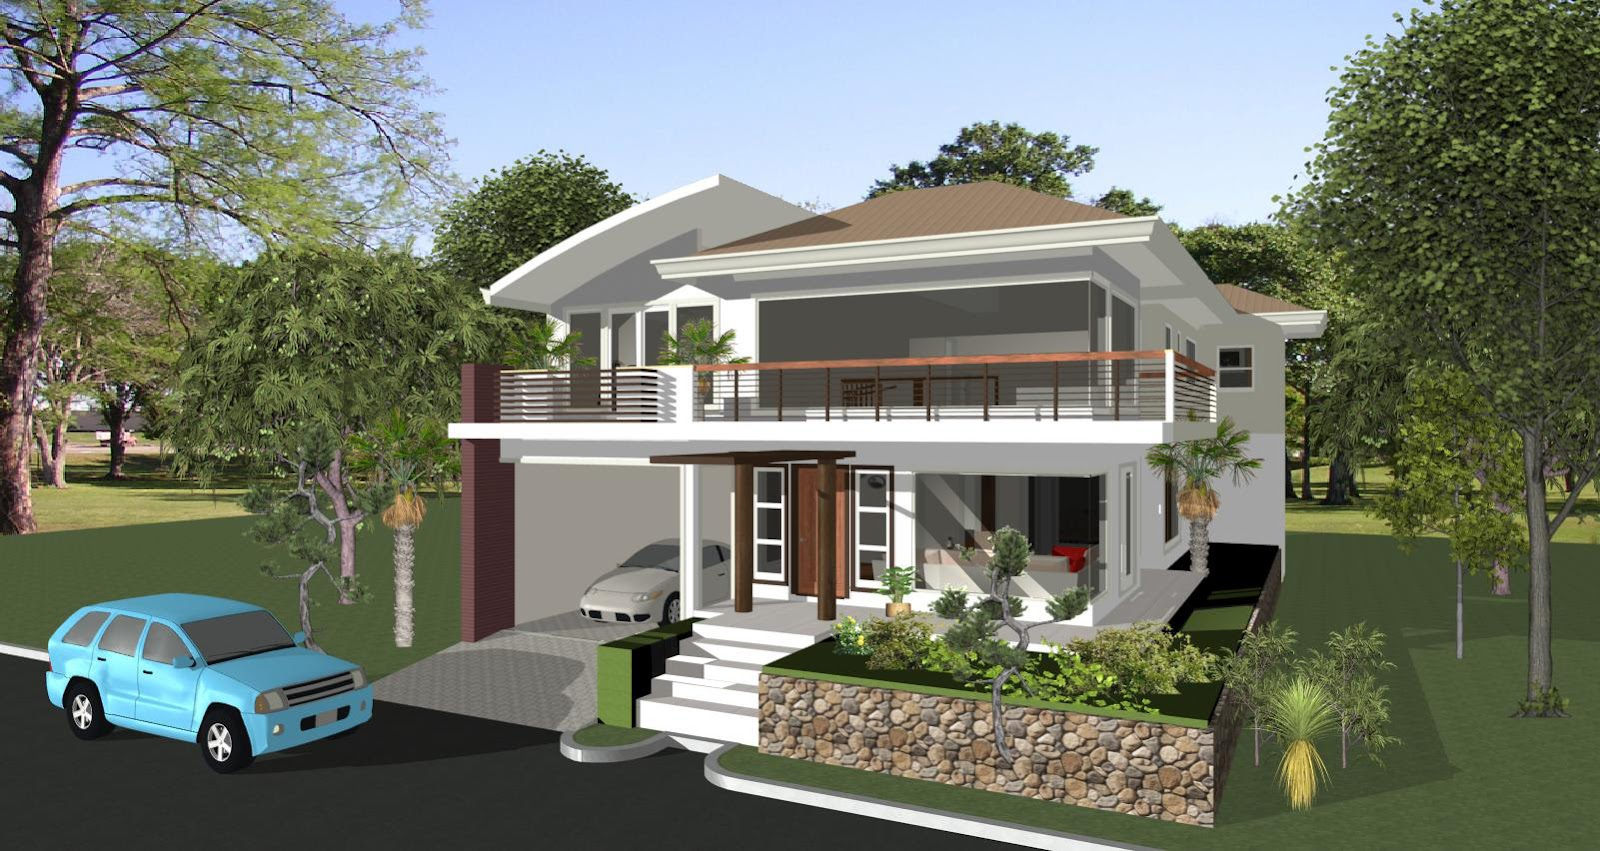 house designs in the philippines in iloilo by erecre group realty rh erecrerealestategroup com